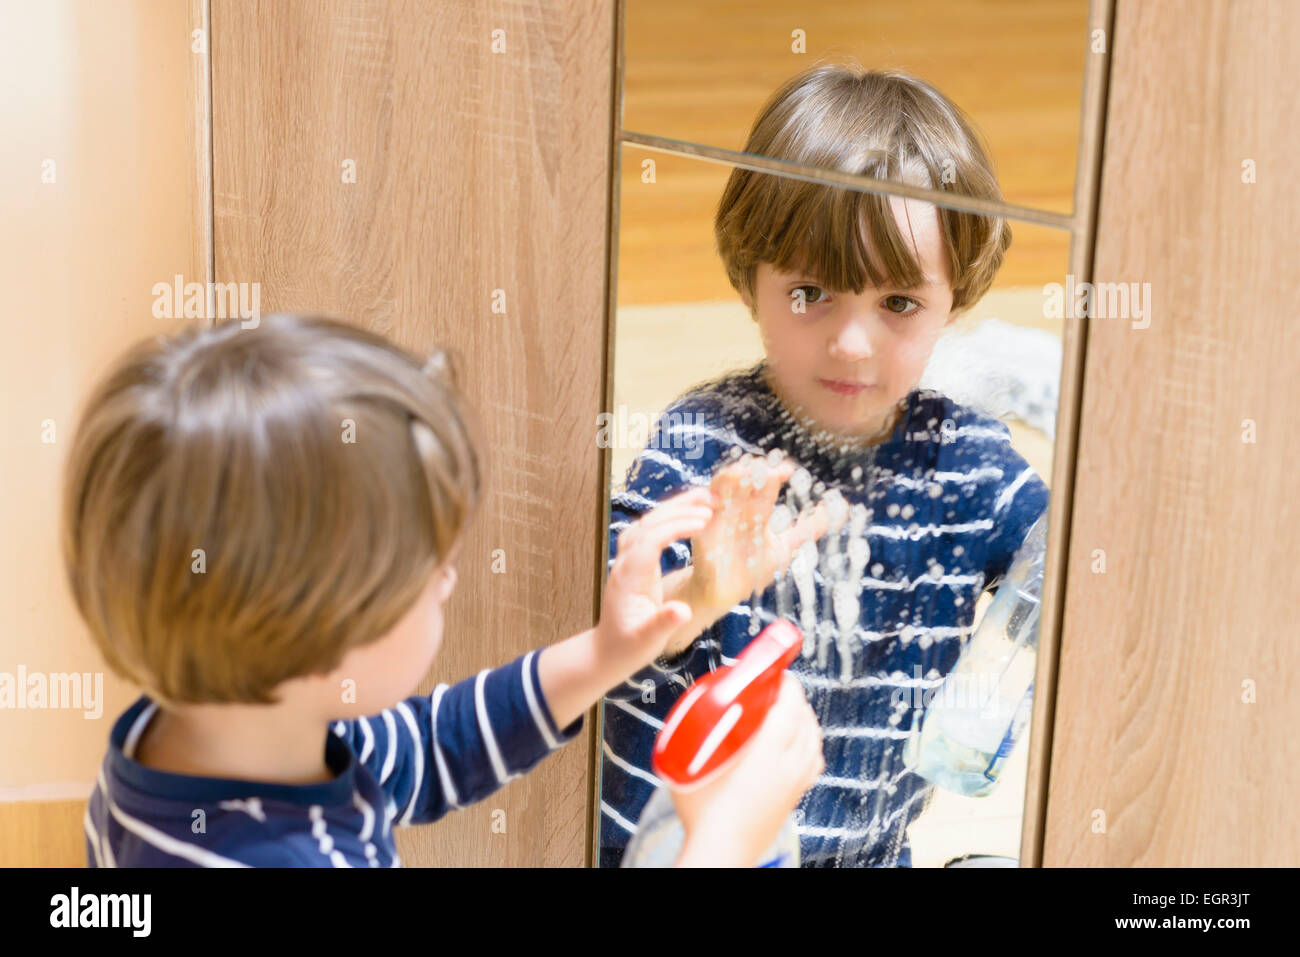 Cute boy cleaning the mirror using some spray - Stock Image